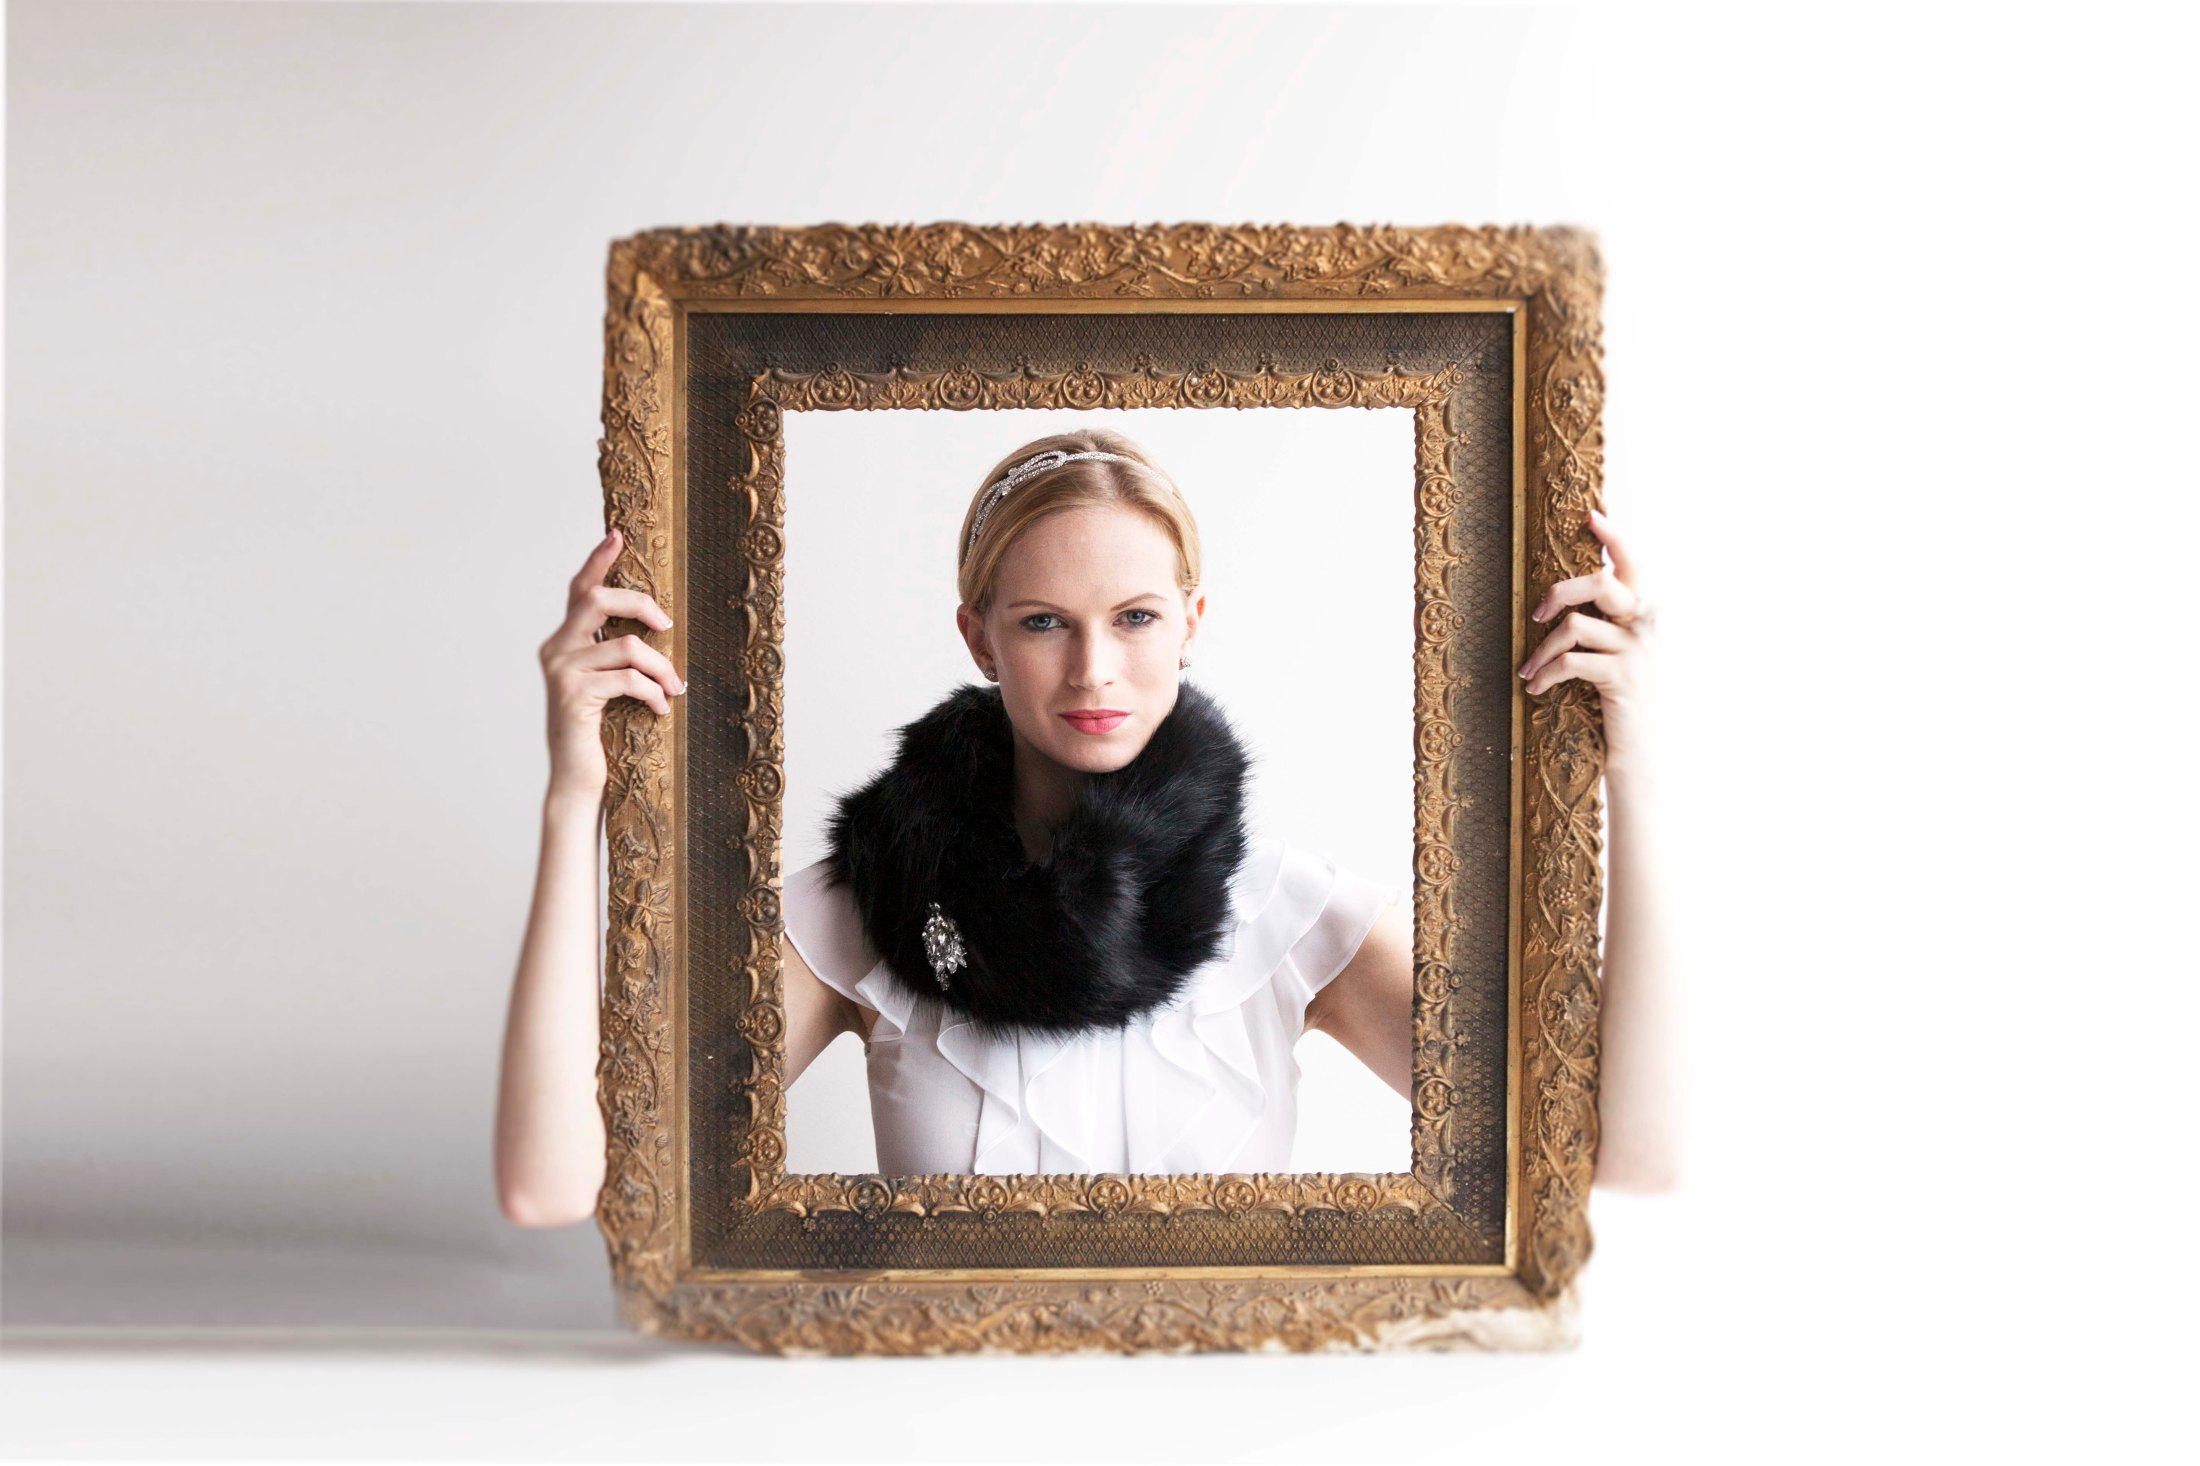 Model wearing diamond bow head band, black fur collar with brooch and white ruffle shirt hold vintage picture fram